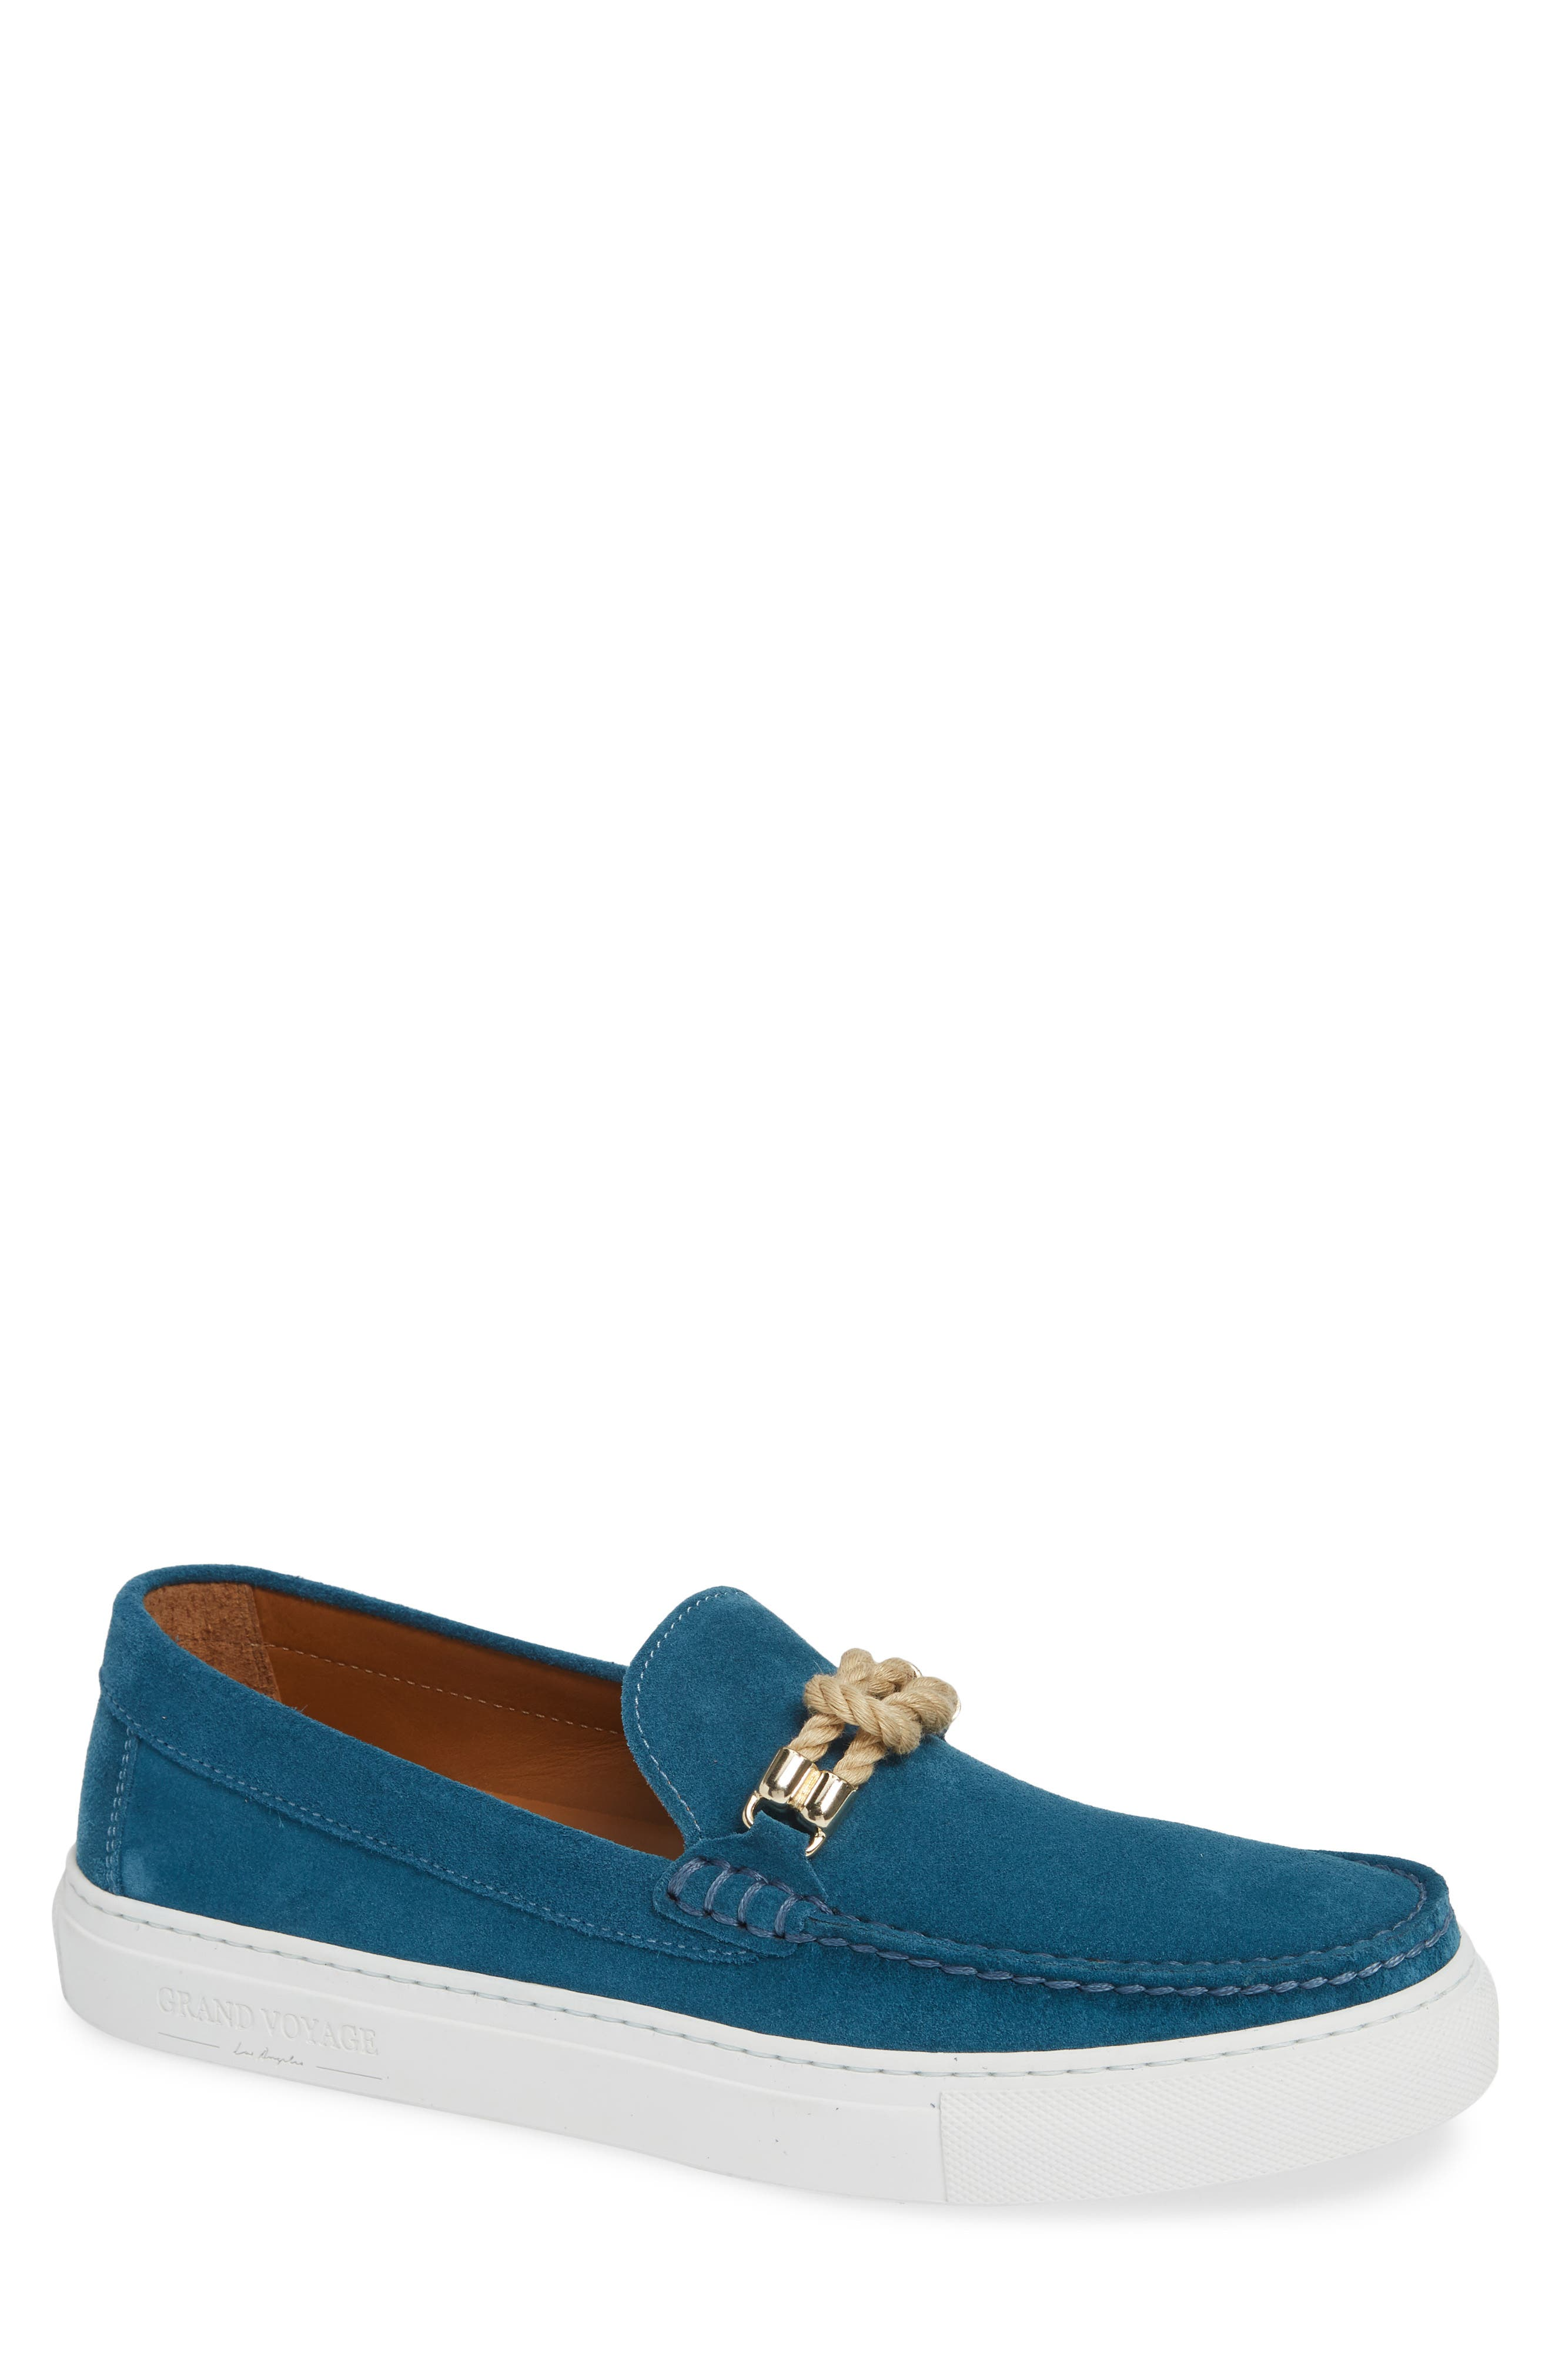 GRAND VOYAGE Britton Square Knot Loafer in Teal Suede